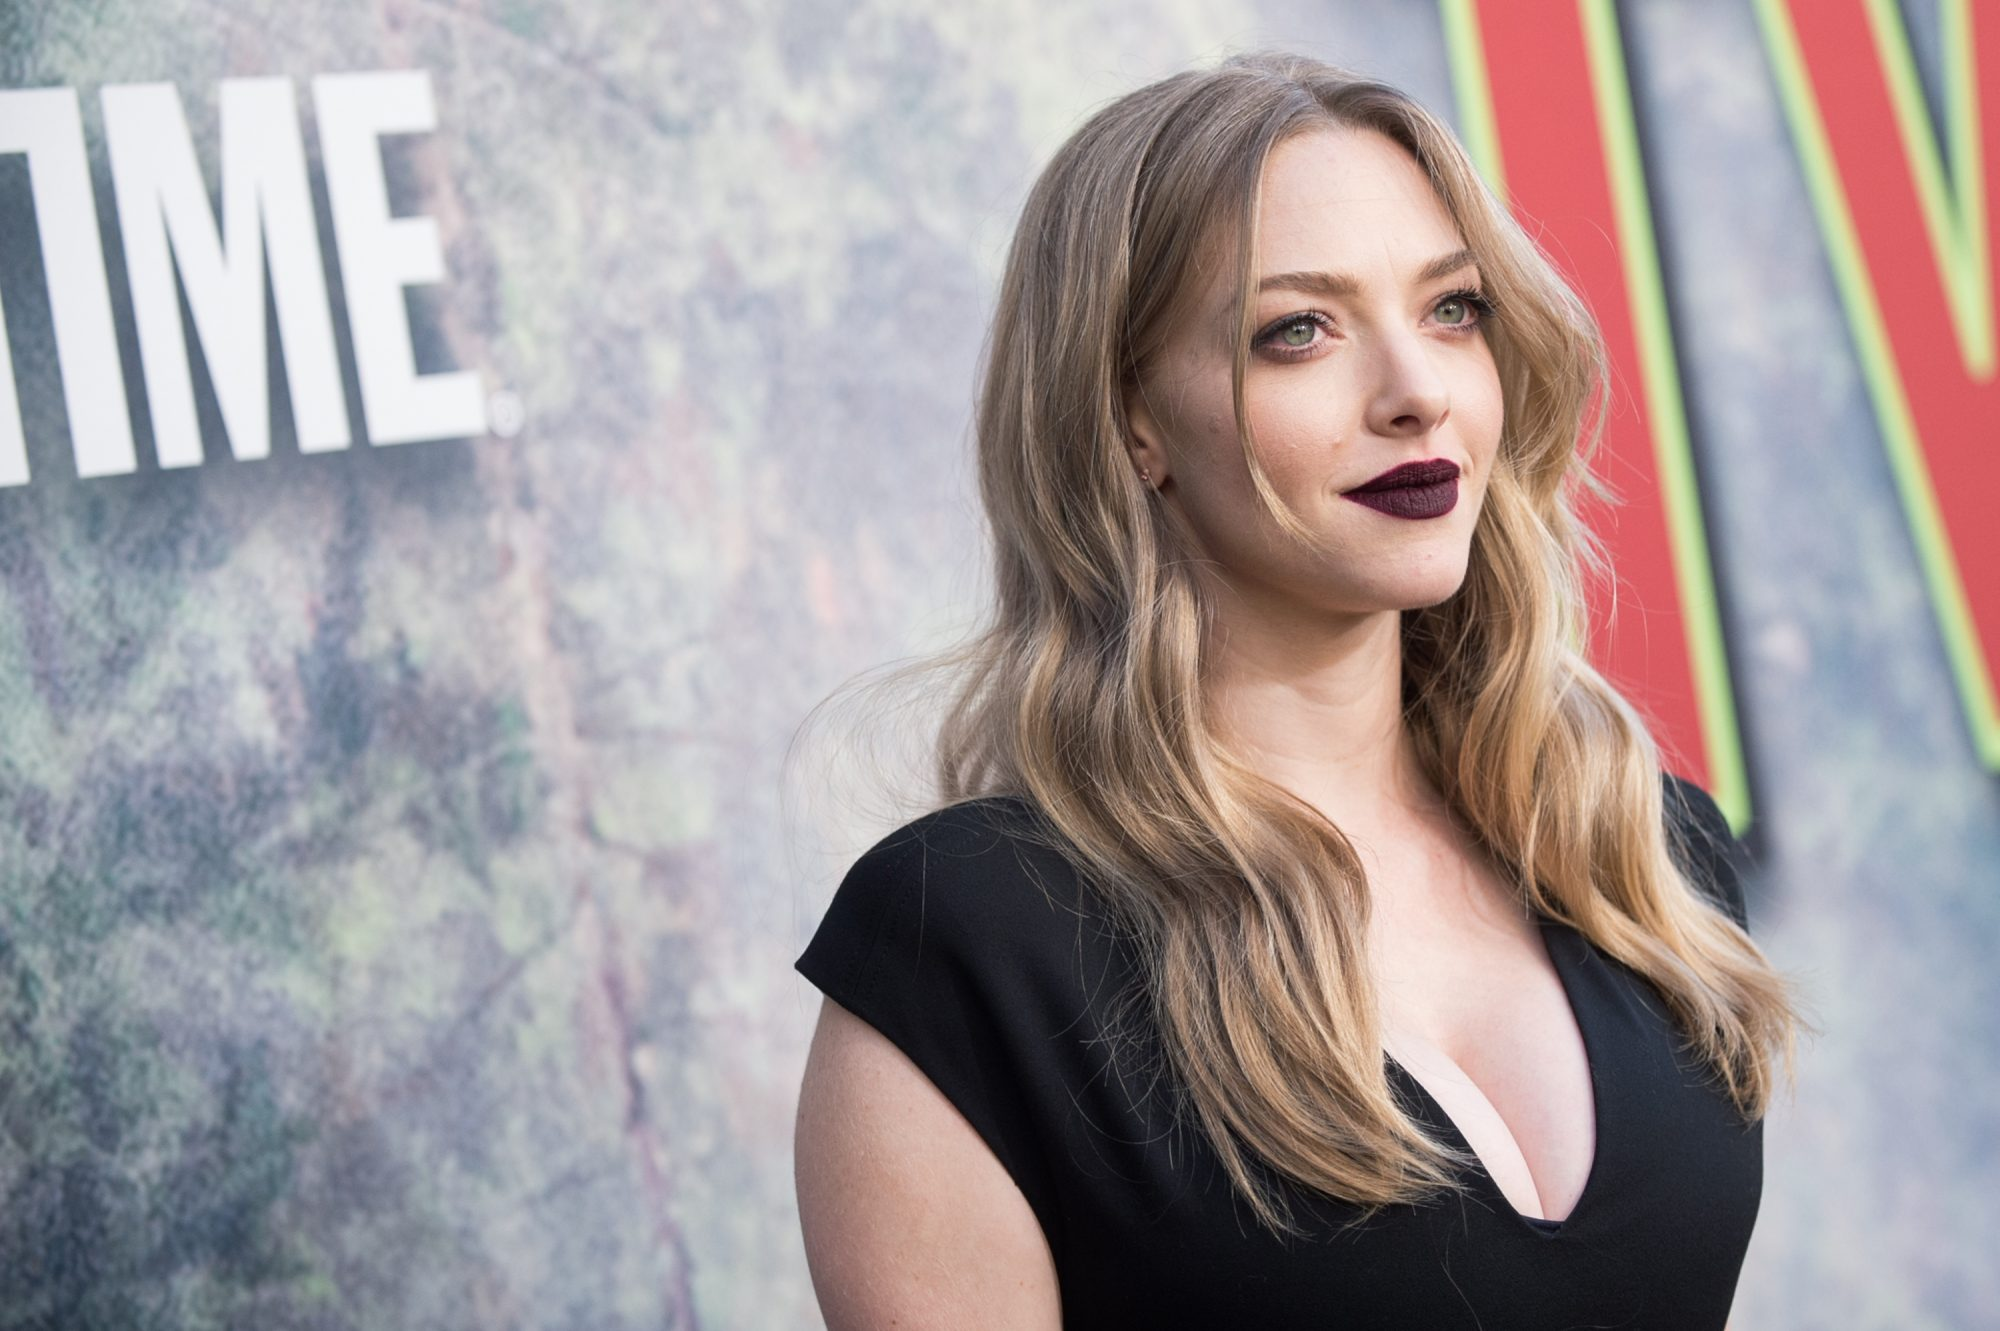 Amanda Seyfried Opens Up About Taking Antidepressants During Pregnancy—Here's What to Know